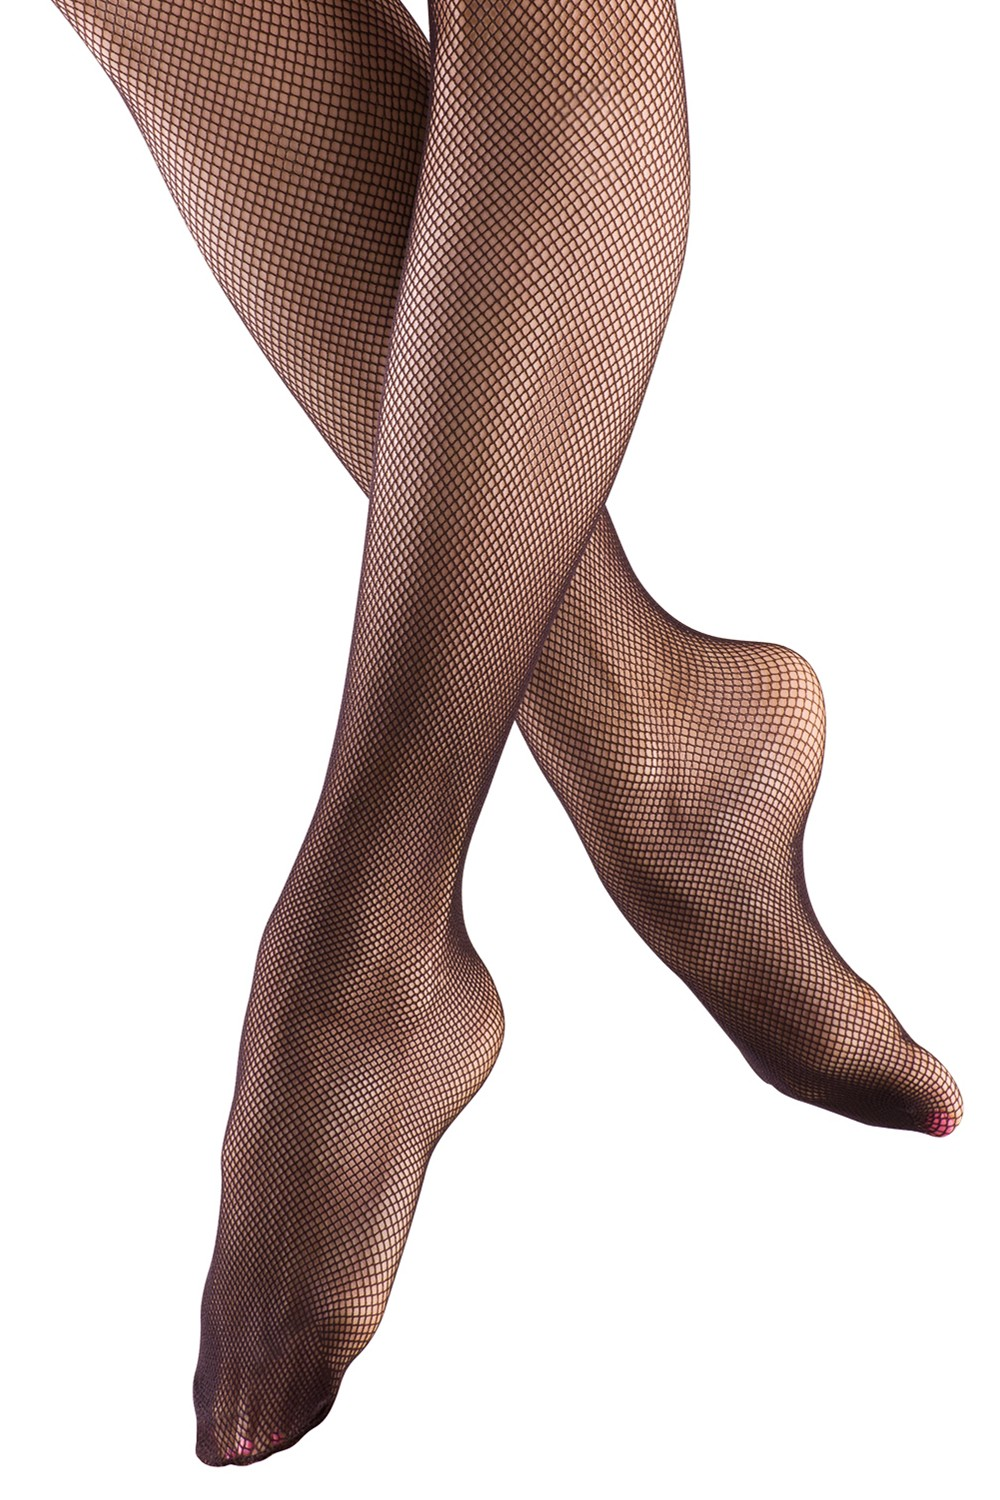 Collant A Rete Donna Women's Dance Tights